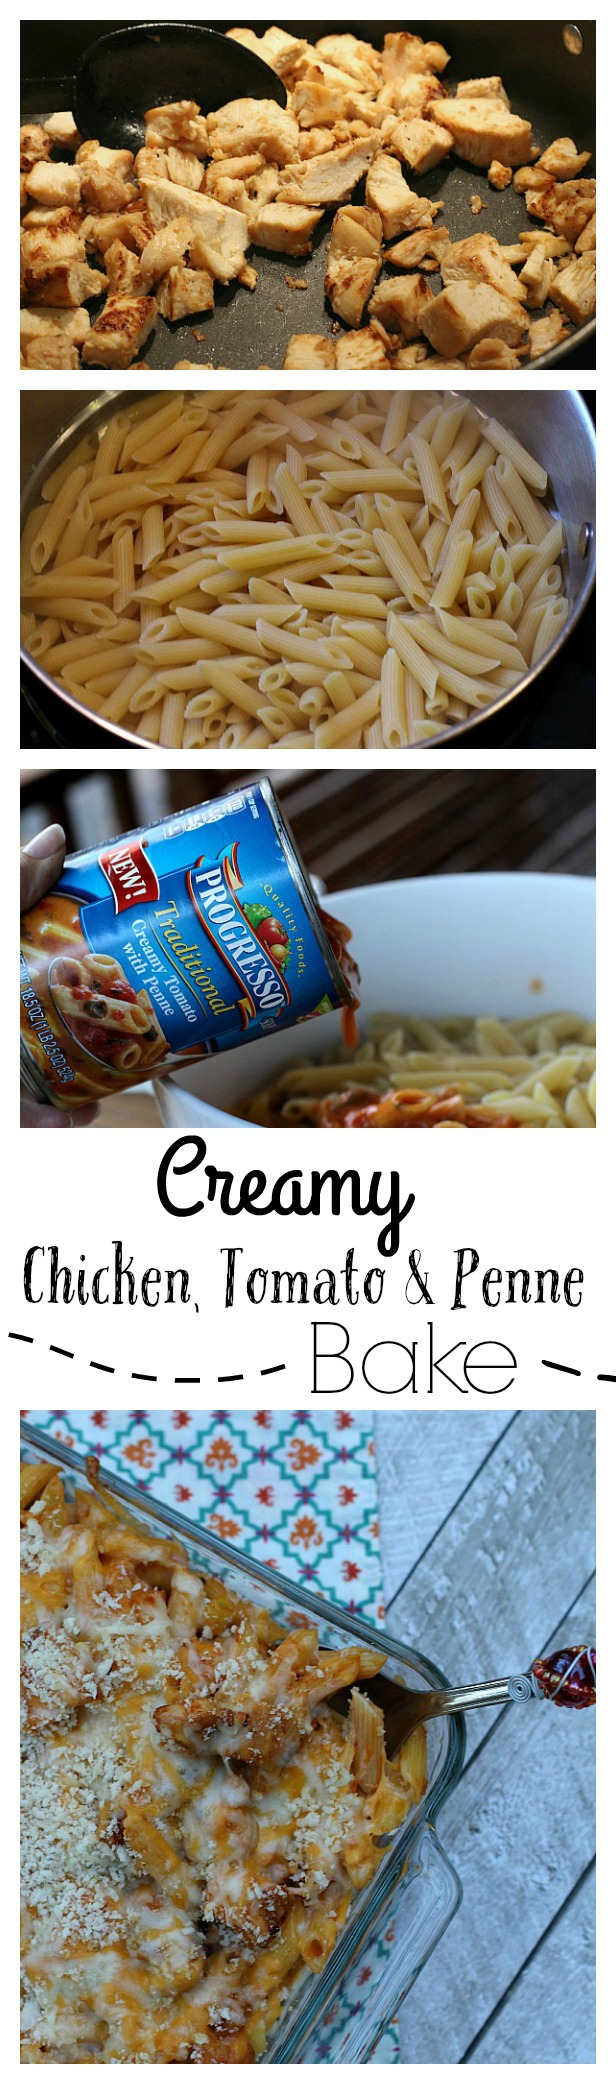 Creamy Chicken, Tomato and Penne Bake